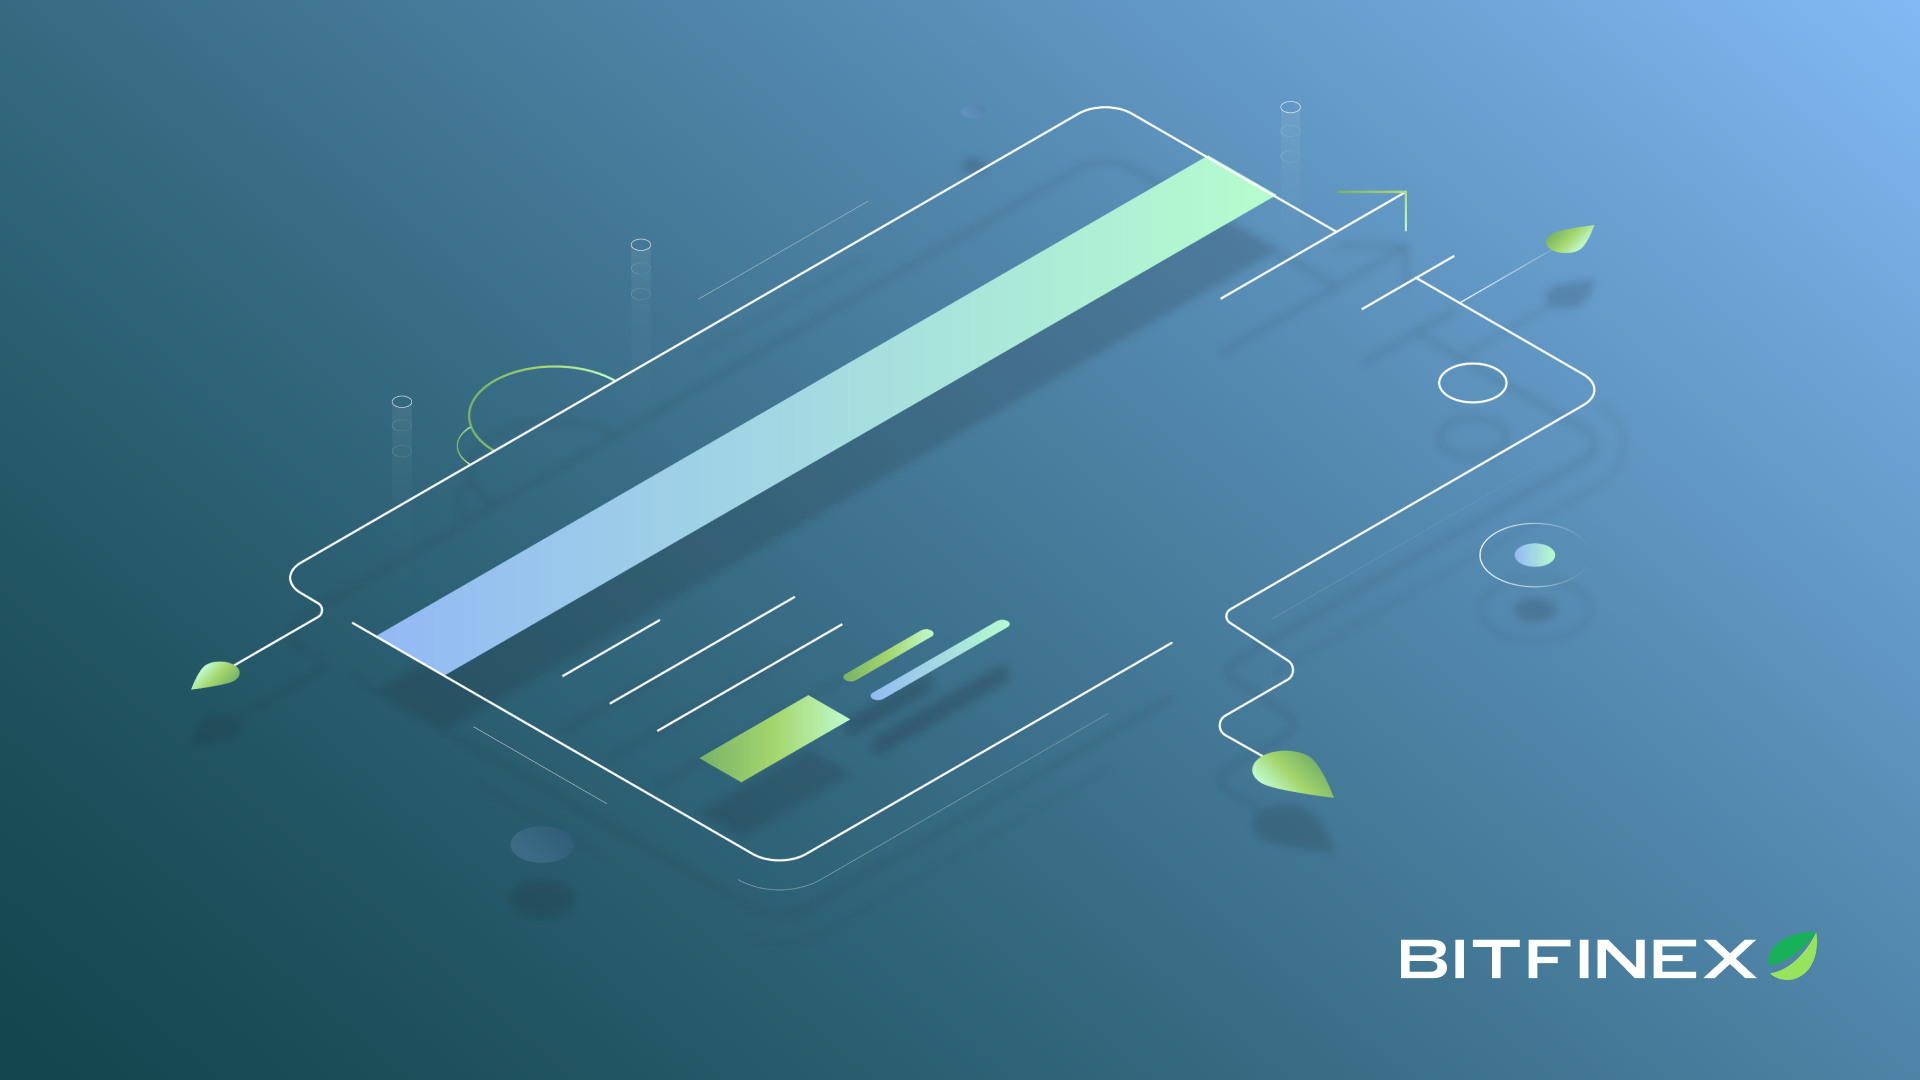 Bitfinex supports payments with credit and debit cards